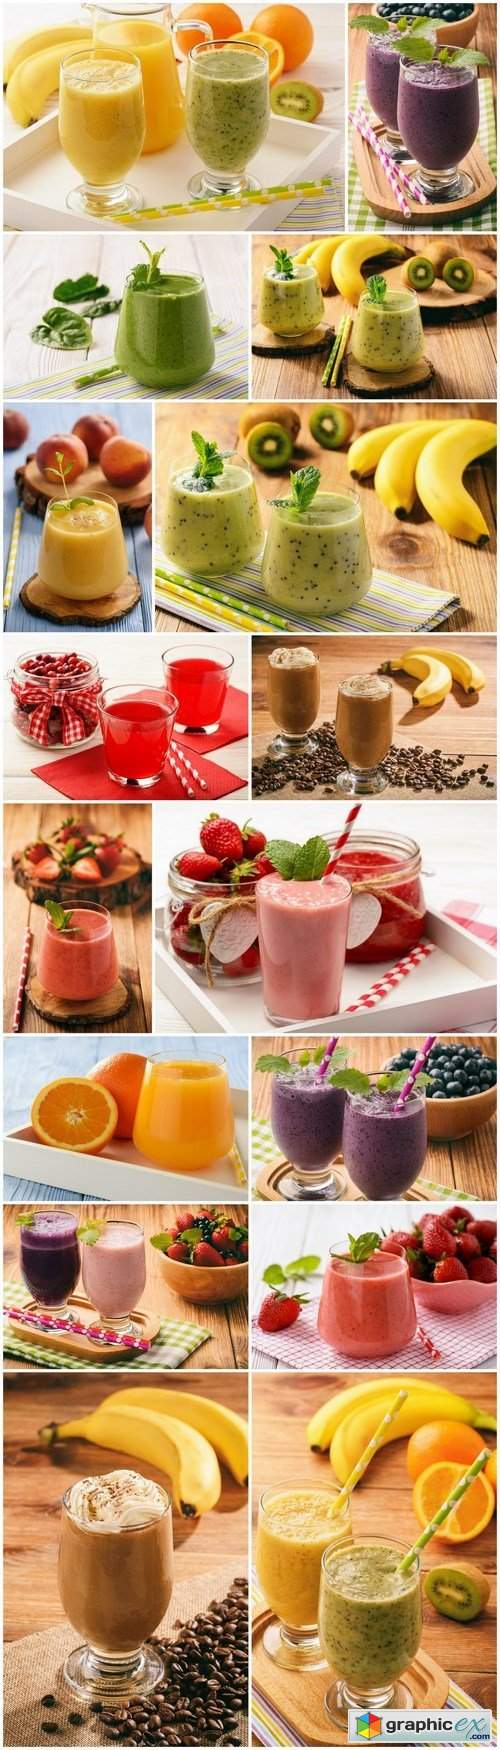 Tasty Smoothie and Juice from Berries and Fruit - 16xHQ JPEG